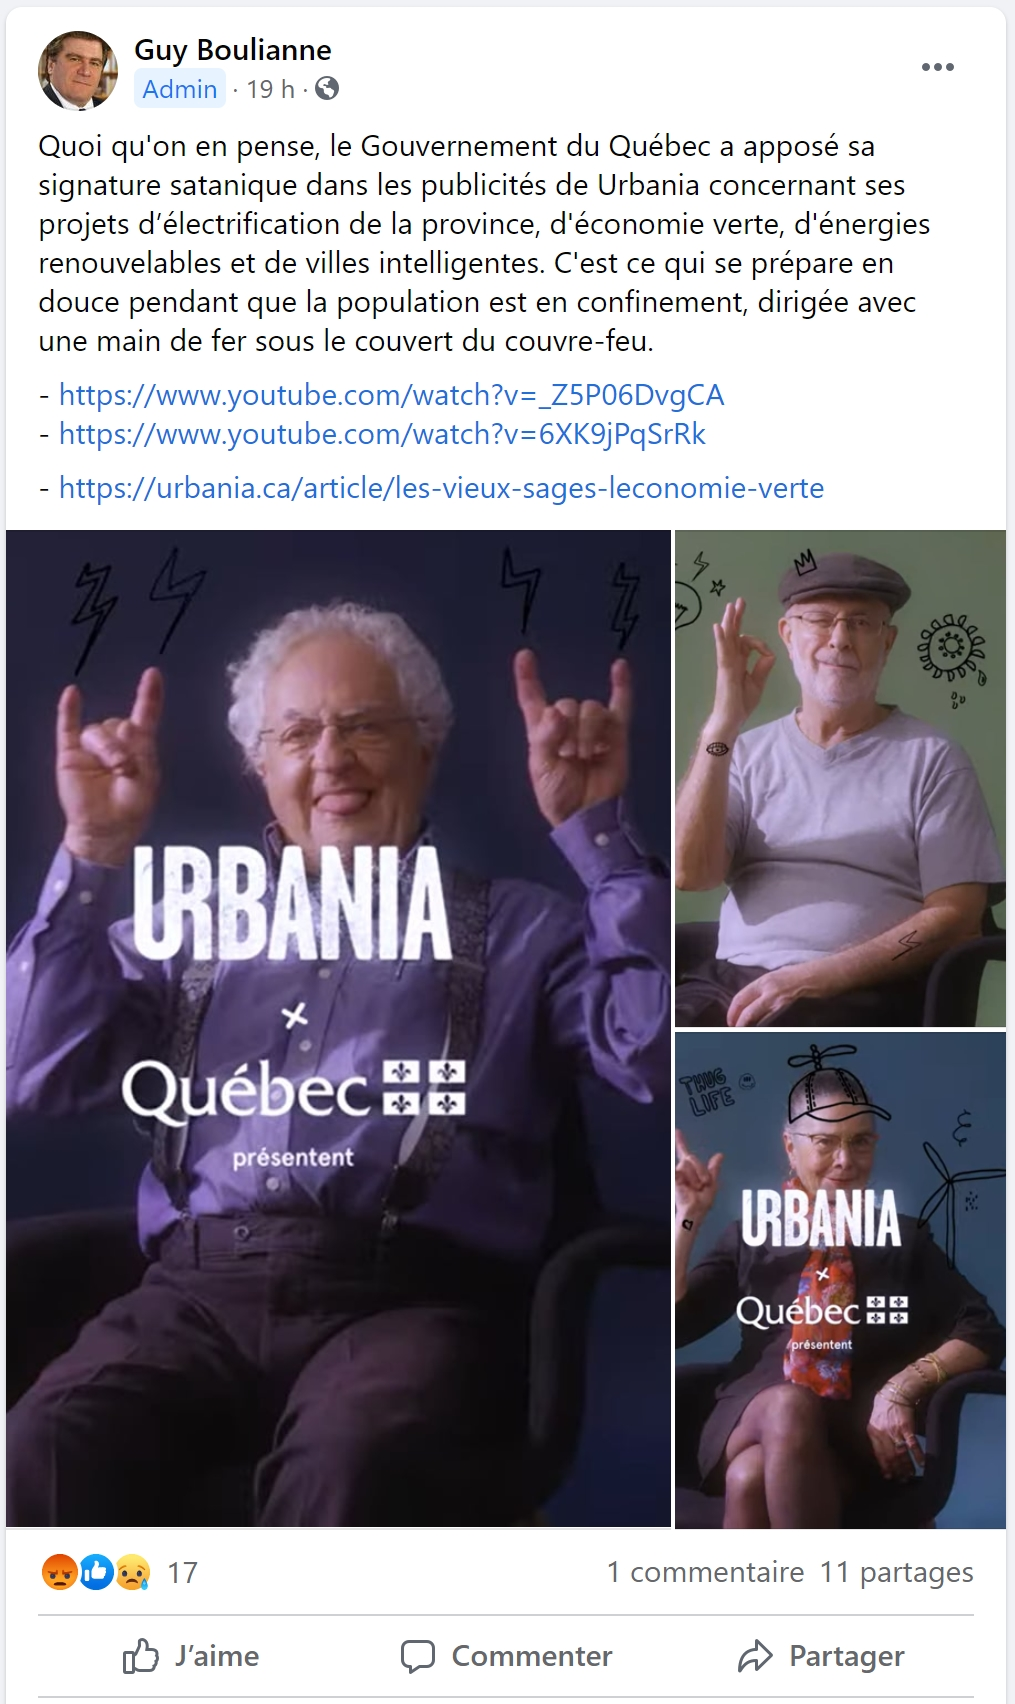 Facebook - Dernière publication de Guy Boulianne (12 avril 2021)